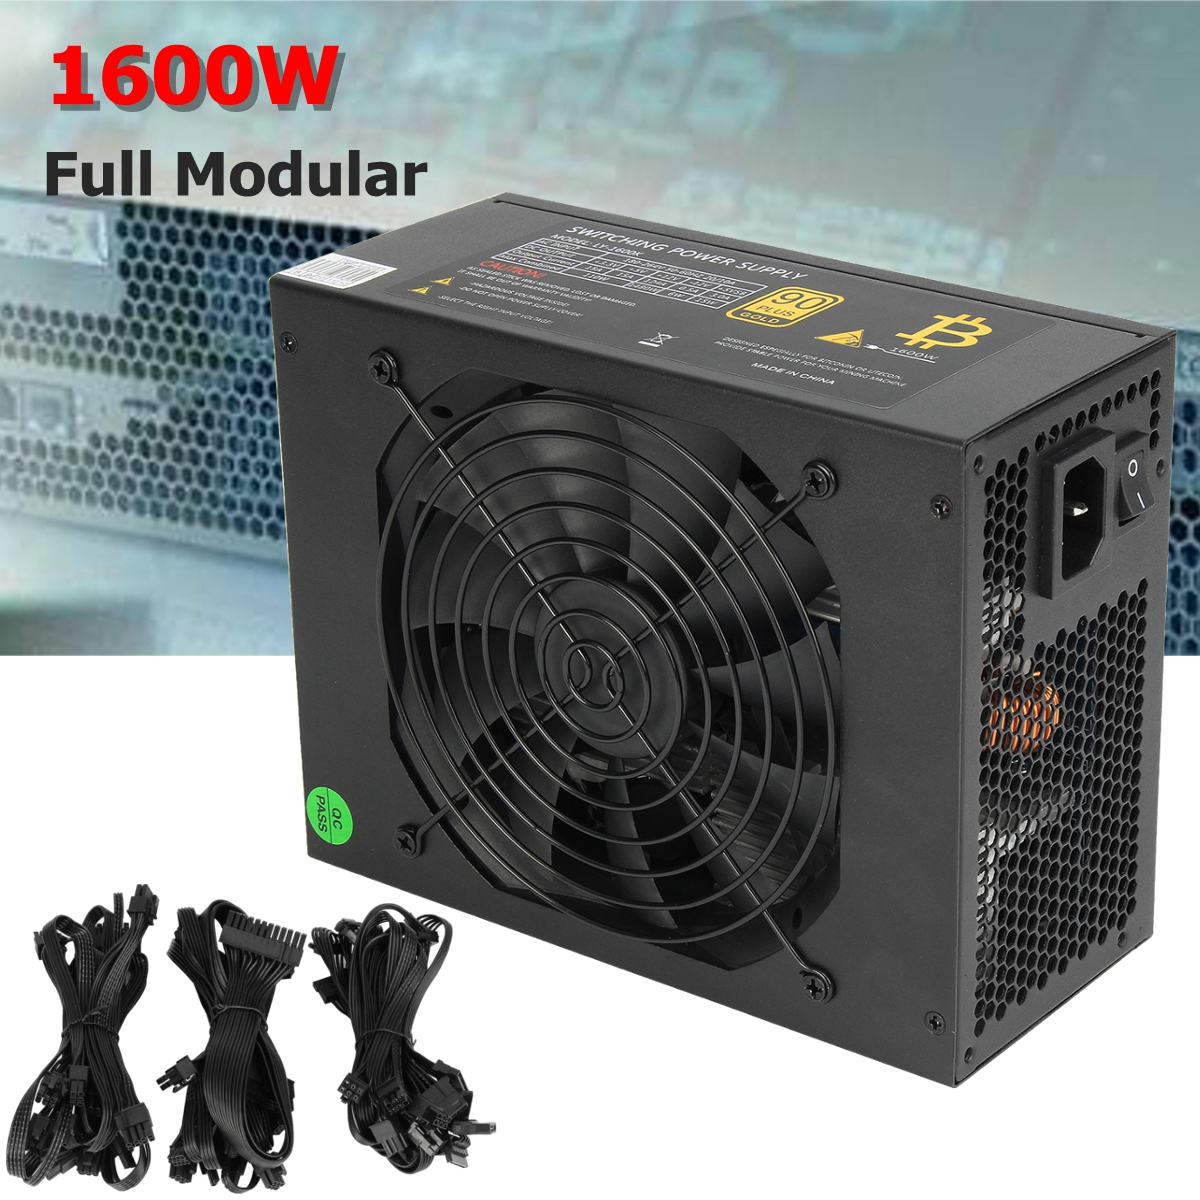 1600W Modular Mining Power Supply GPU For Bitcoin Miner Eth Rig S7 S9 L3+ D3 High Quality computer Power Supply For BTC цена 2017